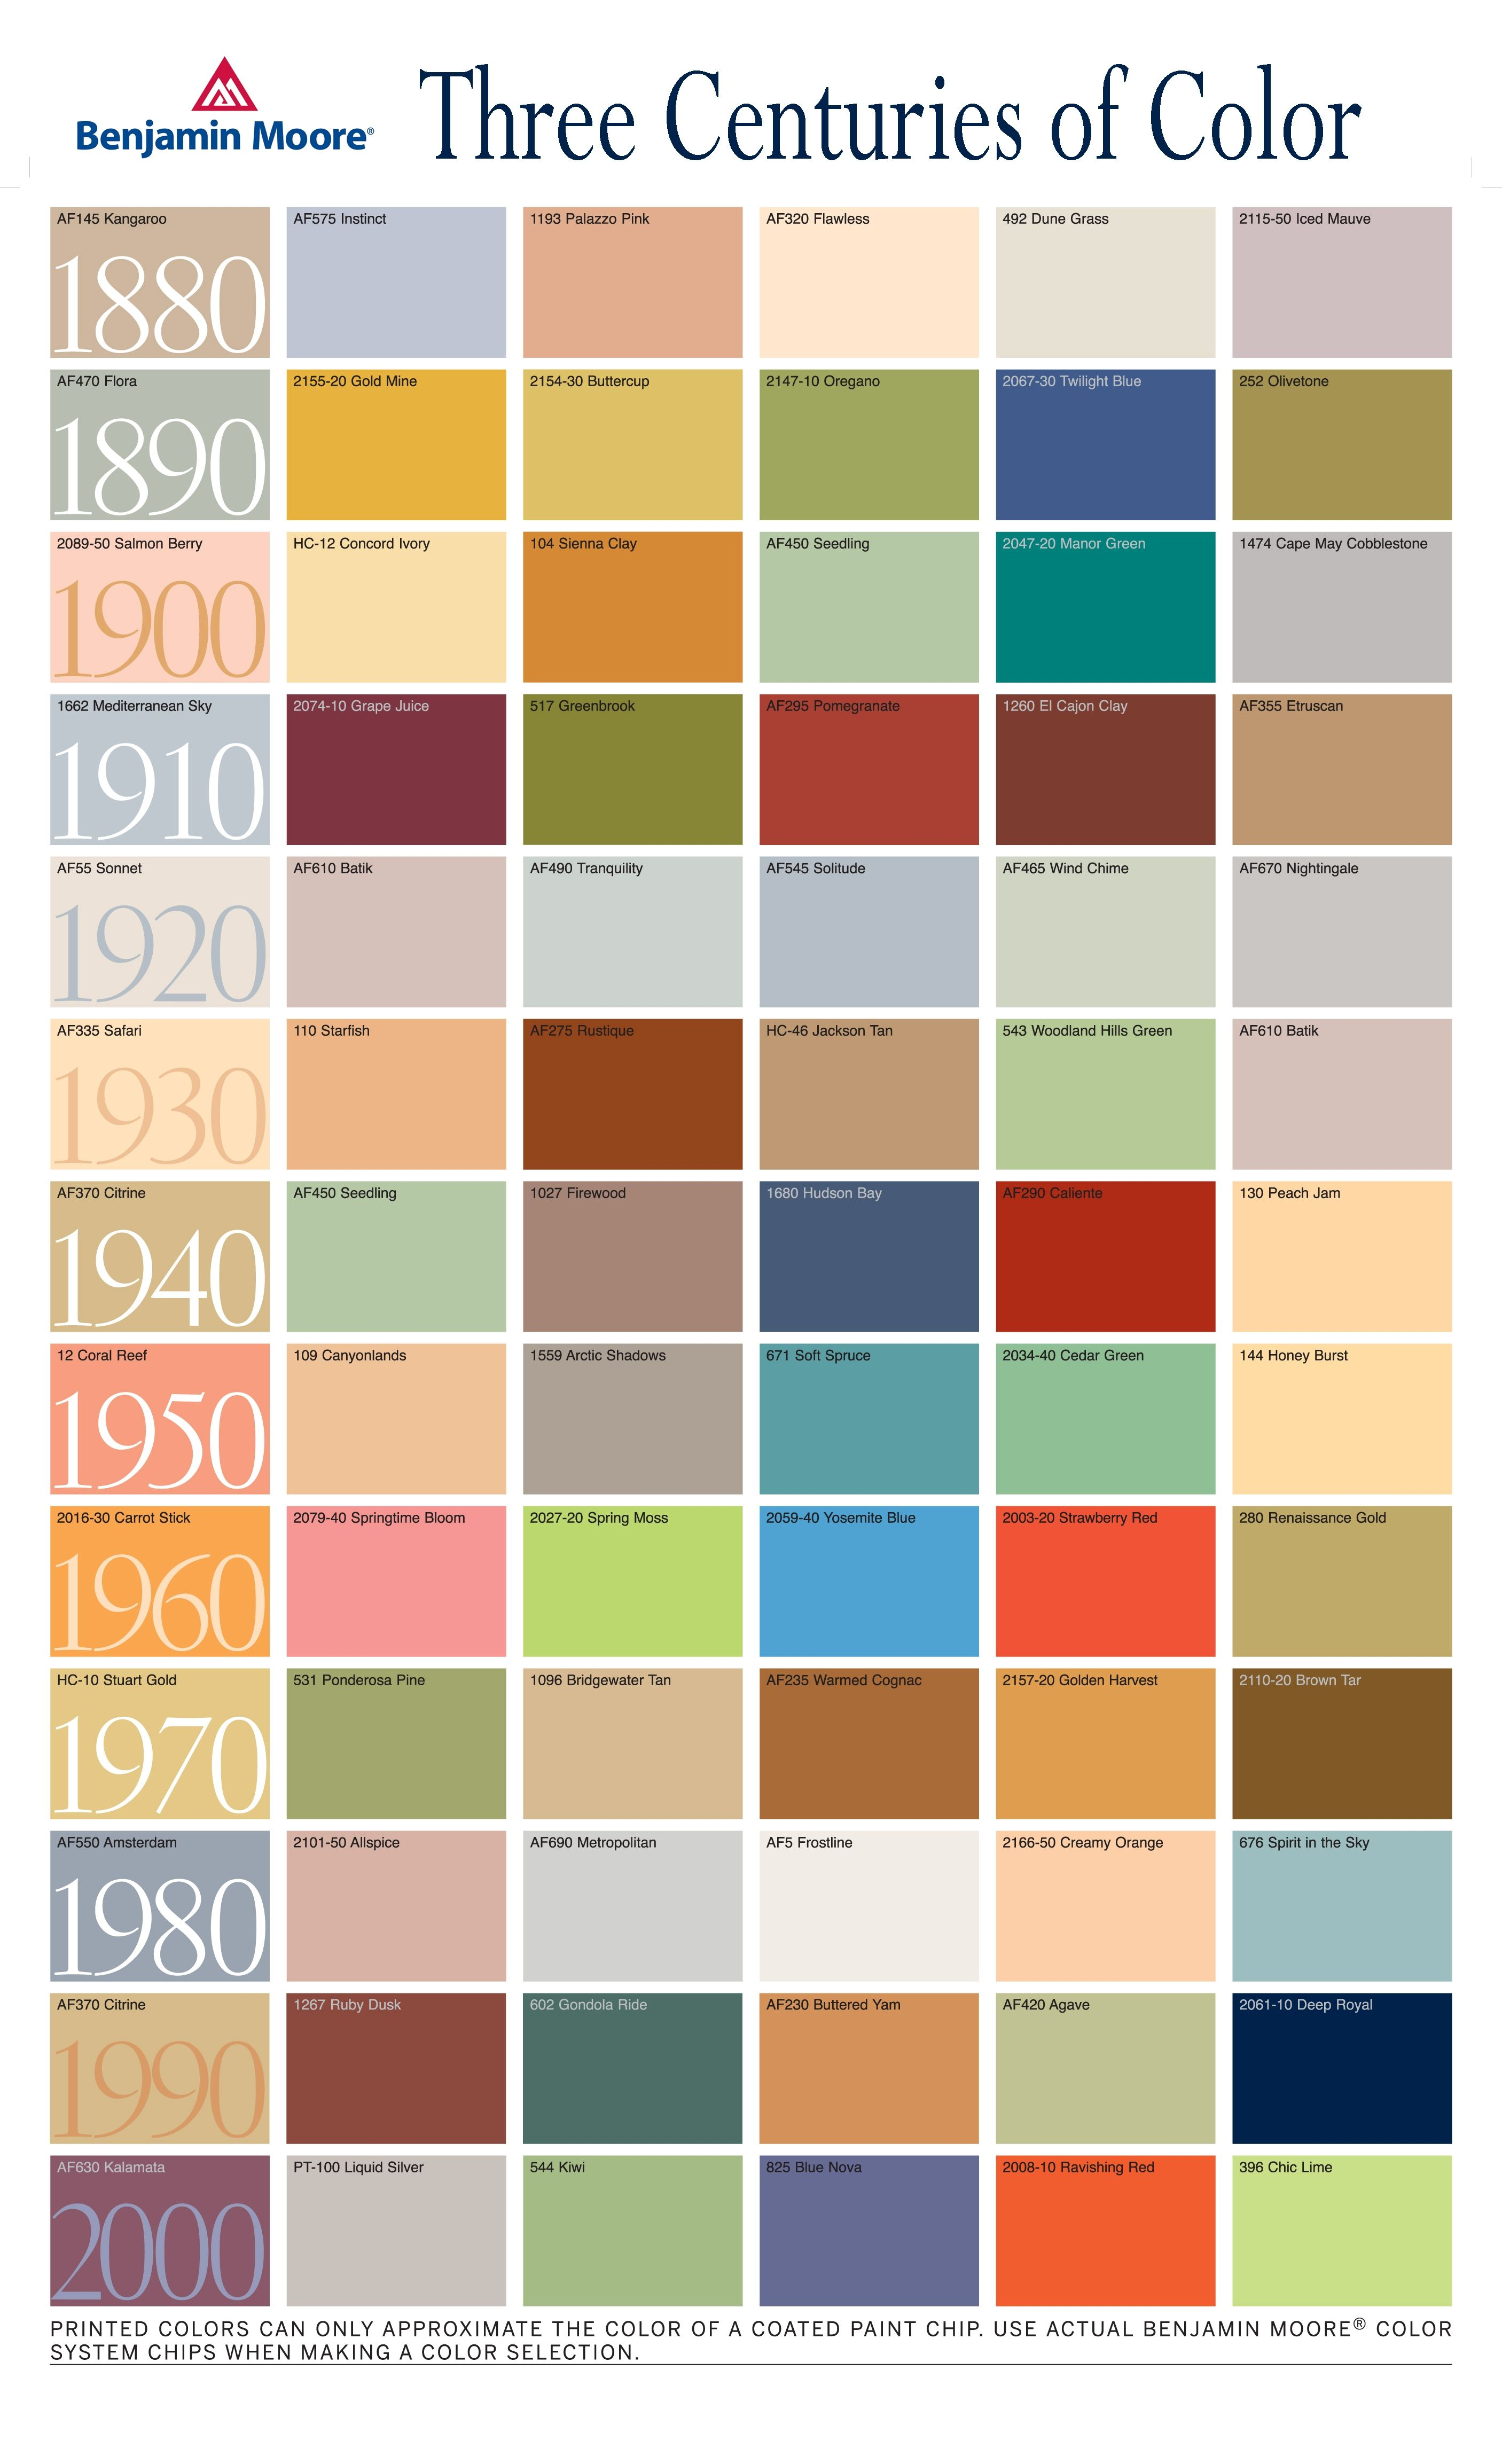 Benjamin moore lemon sorbet google search colour palette benjamin moore historical color chart three centuries of color geenschuldenfo Gallery